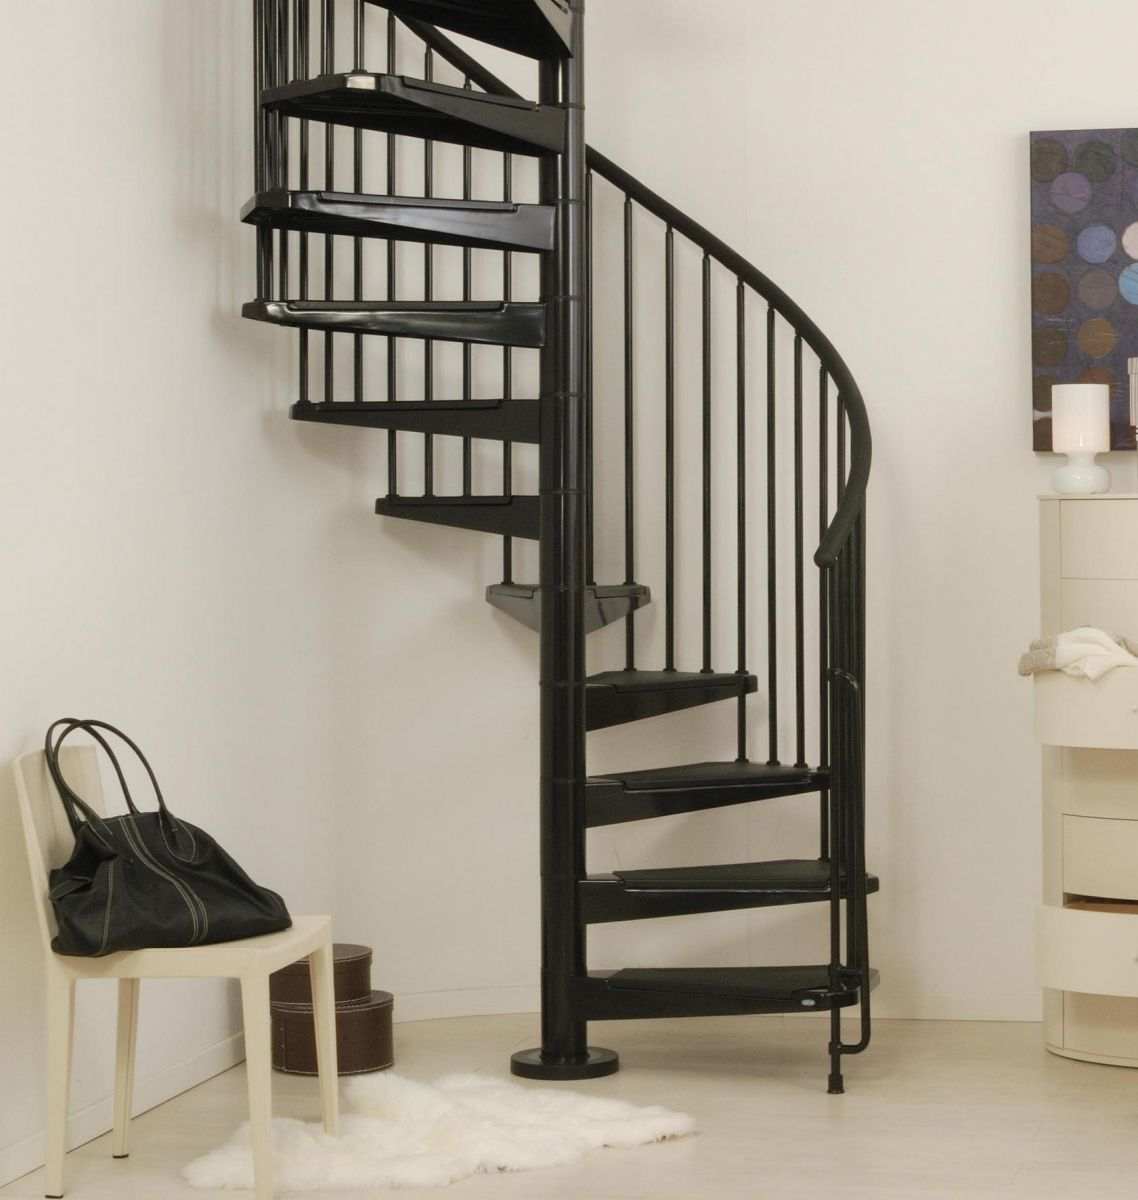 escalier escalera pinterest escalera. Black Bedroom Furniture Sets. Home Design Ideas